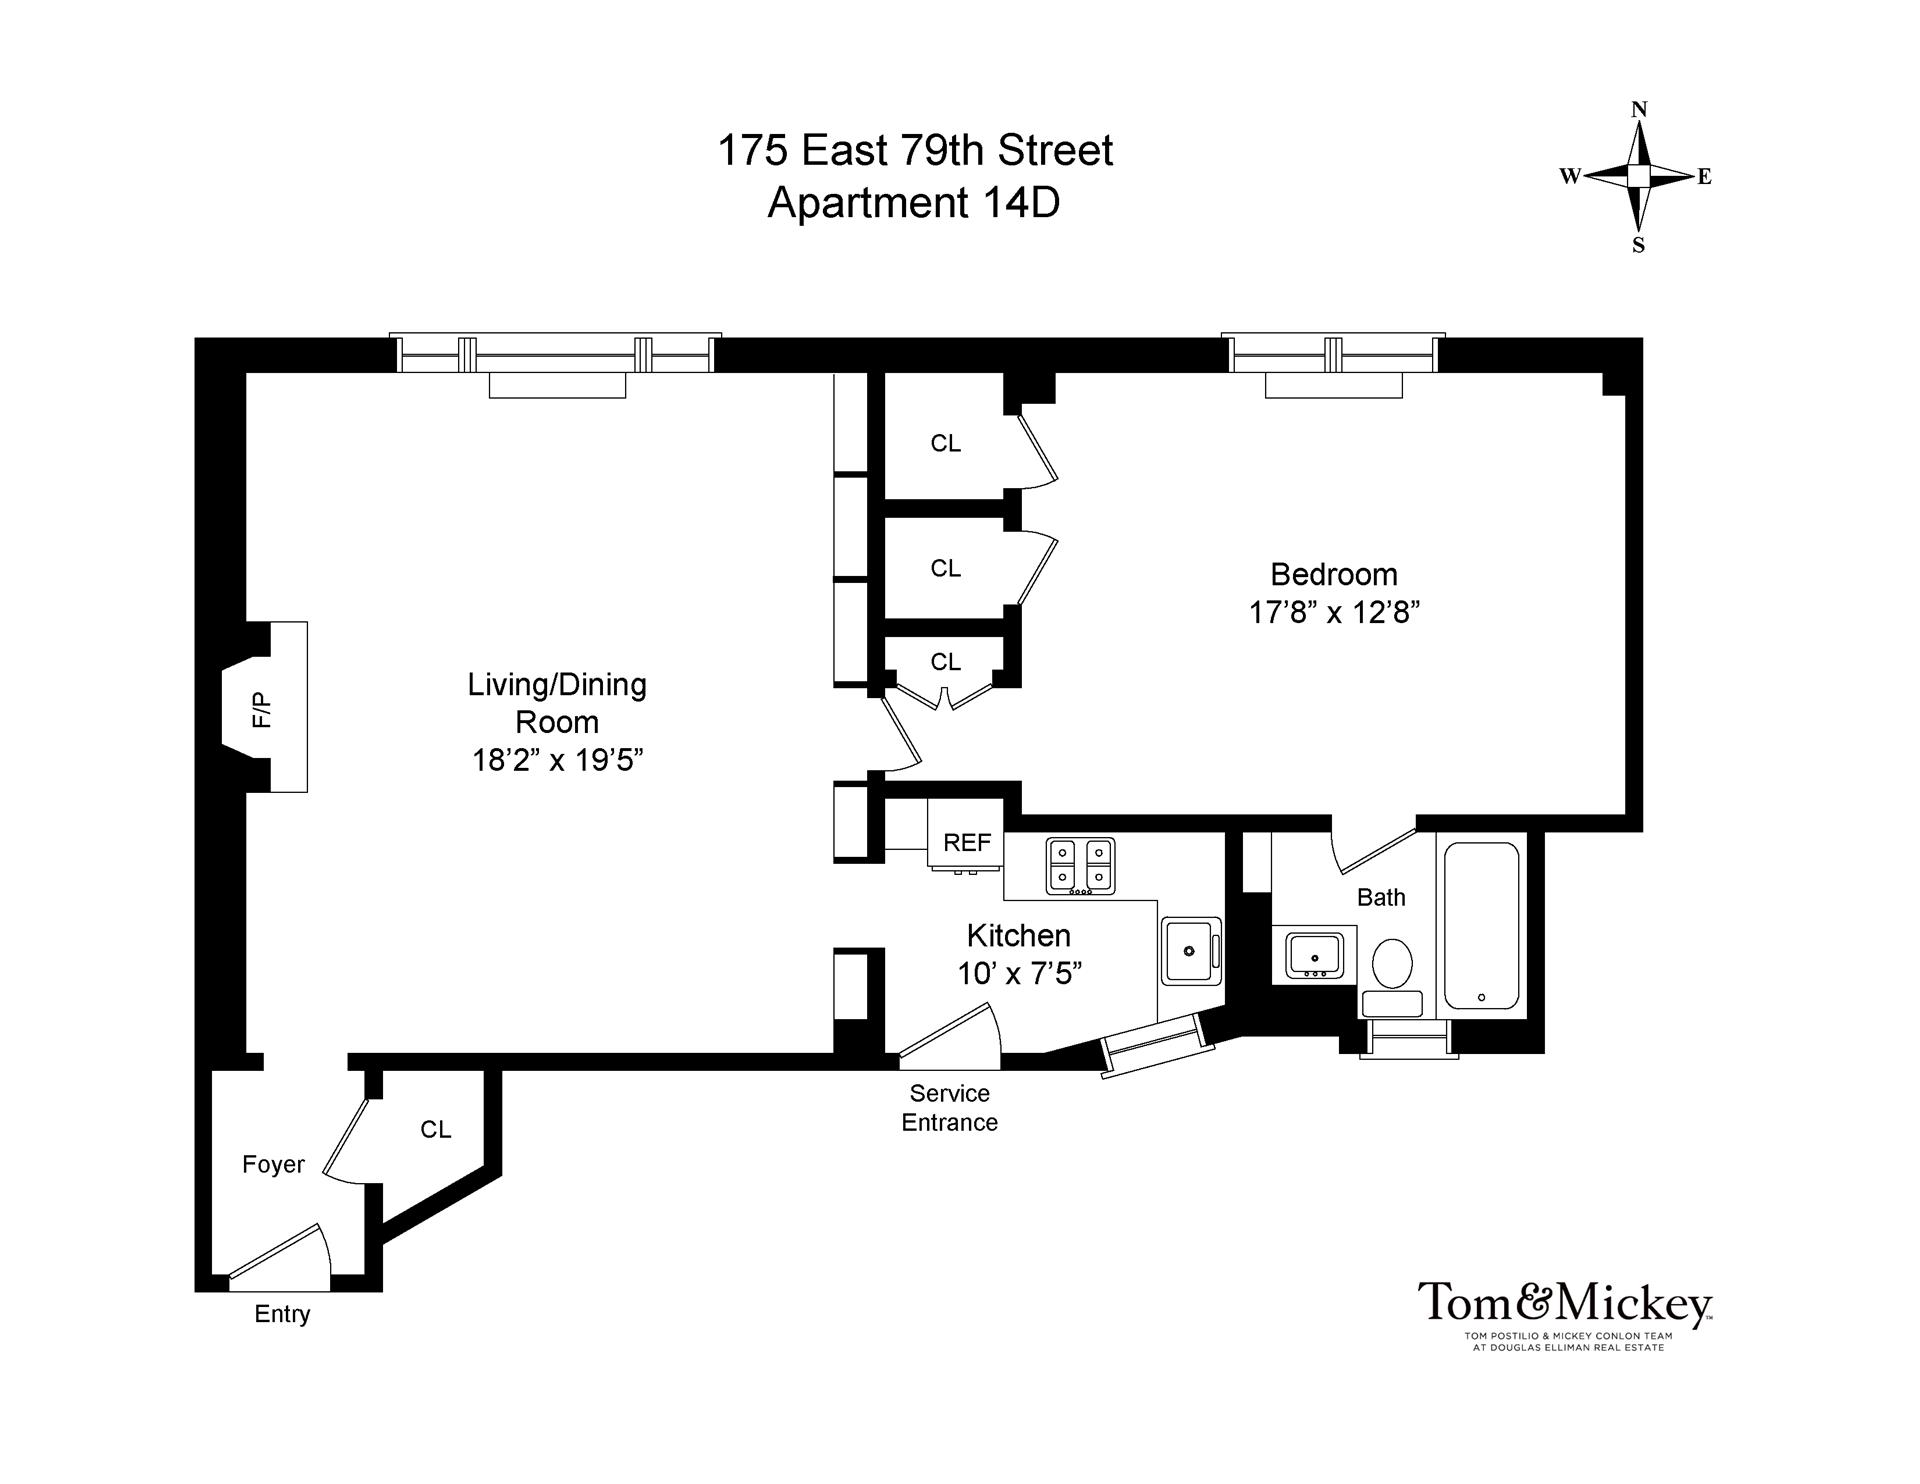 Floor plan of 175 East 79 Tenants Corp, 175 East 79th St, 14D - Upper East Side, New York